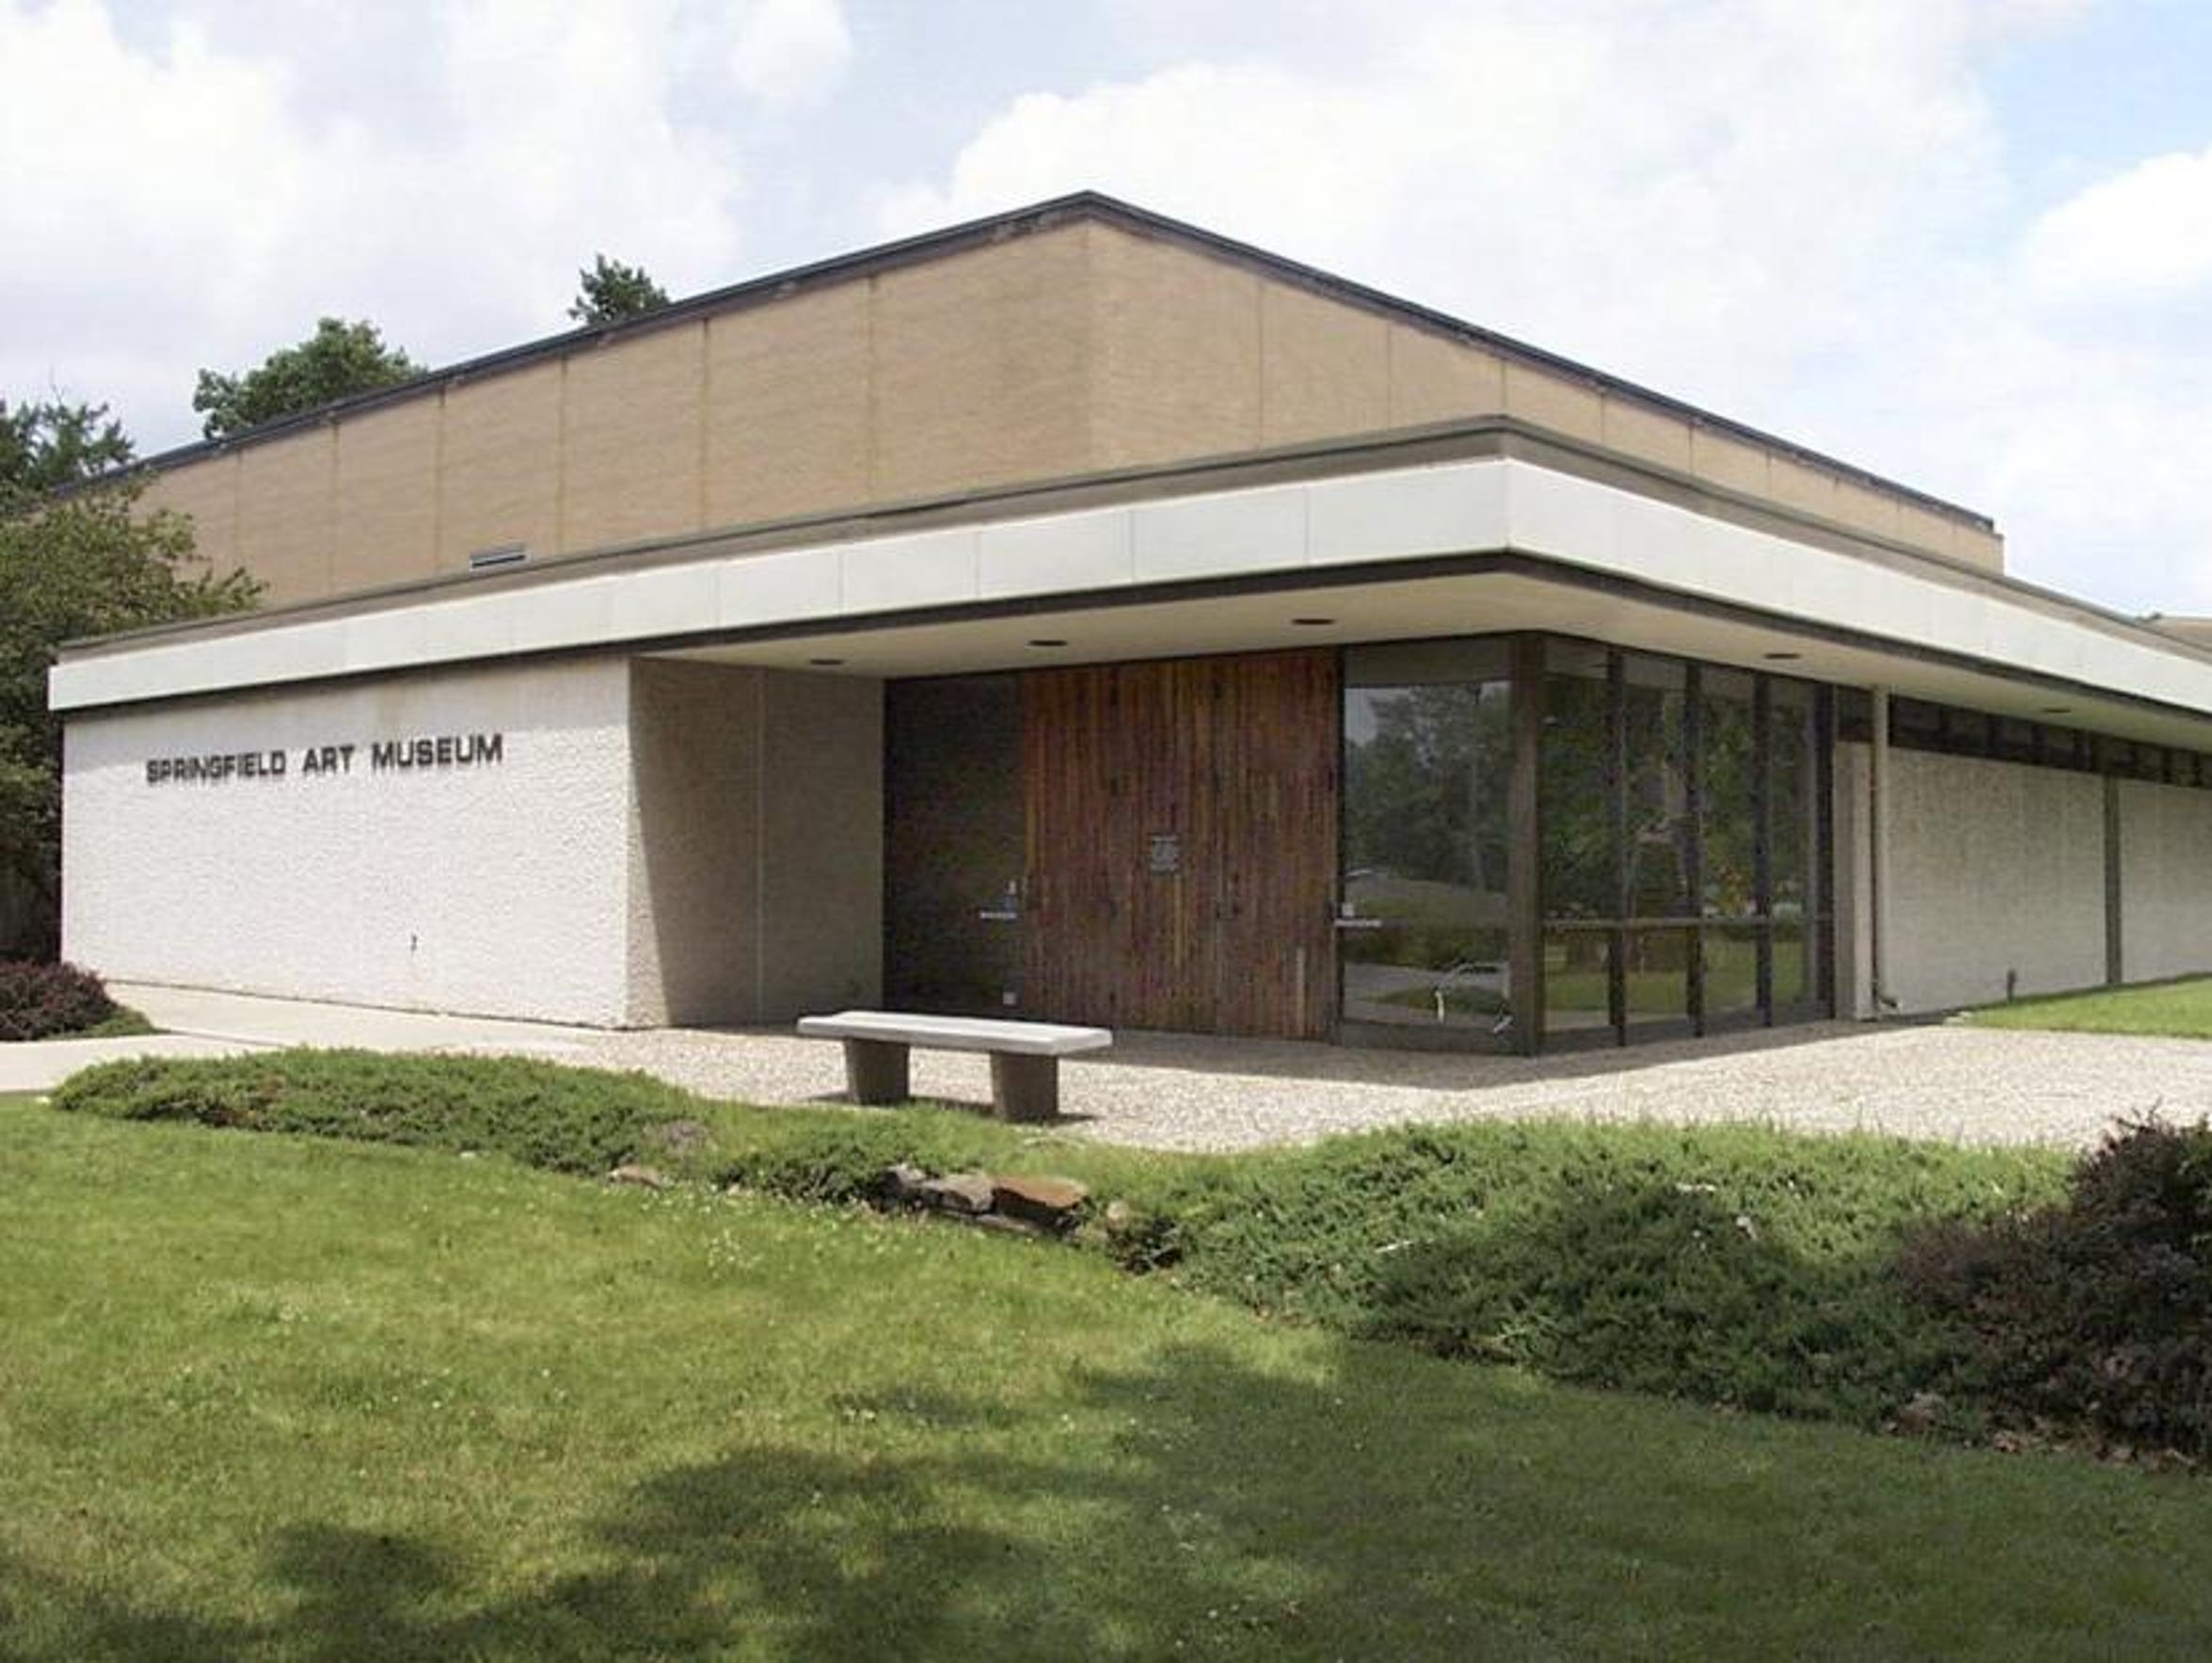 A 2003 photo of the Springfield Art Museum entrance,